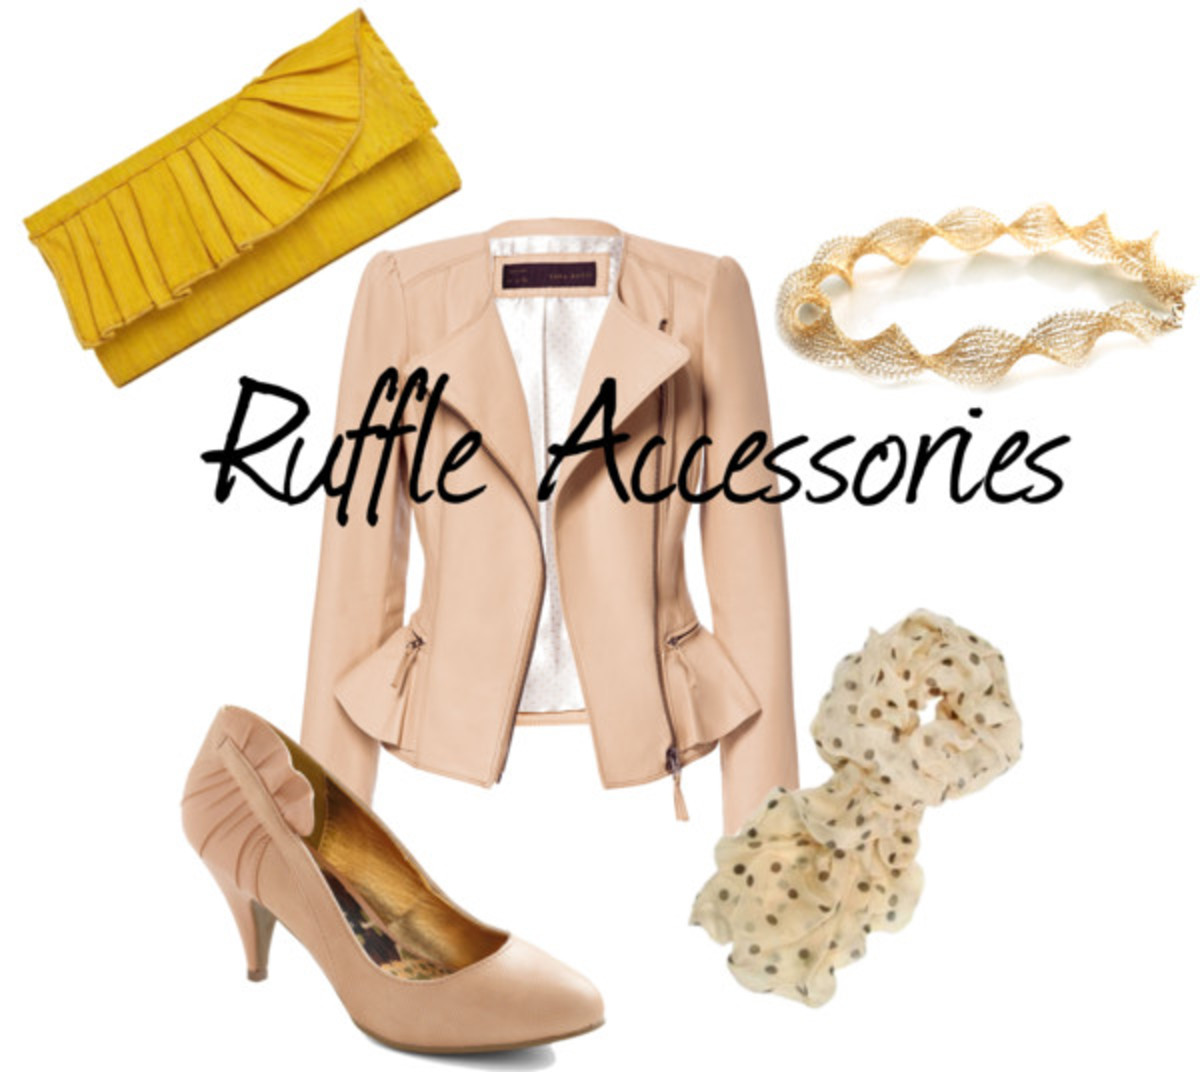 Ruffle Accessories